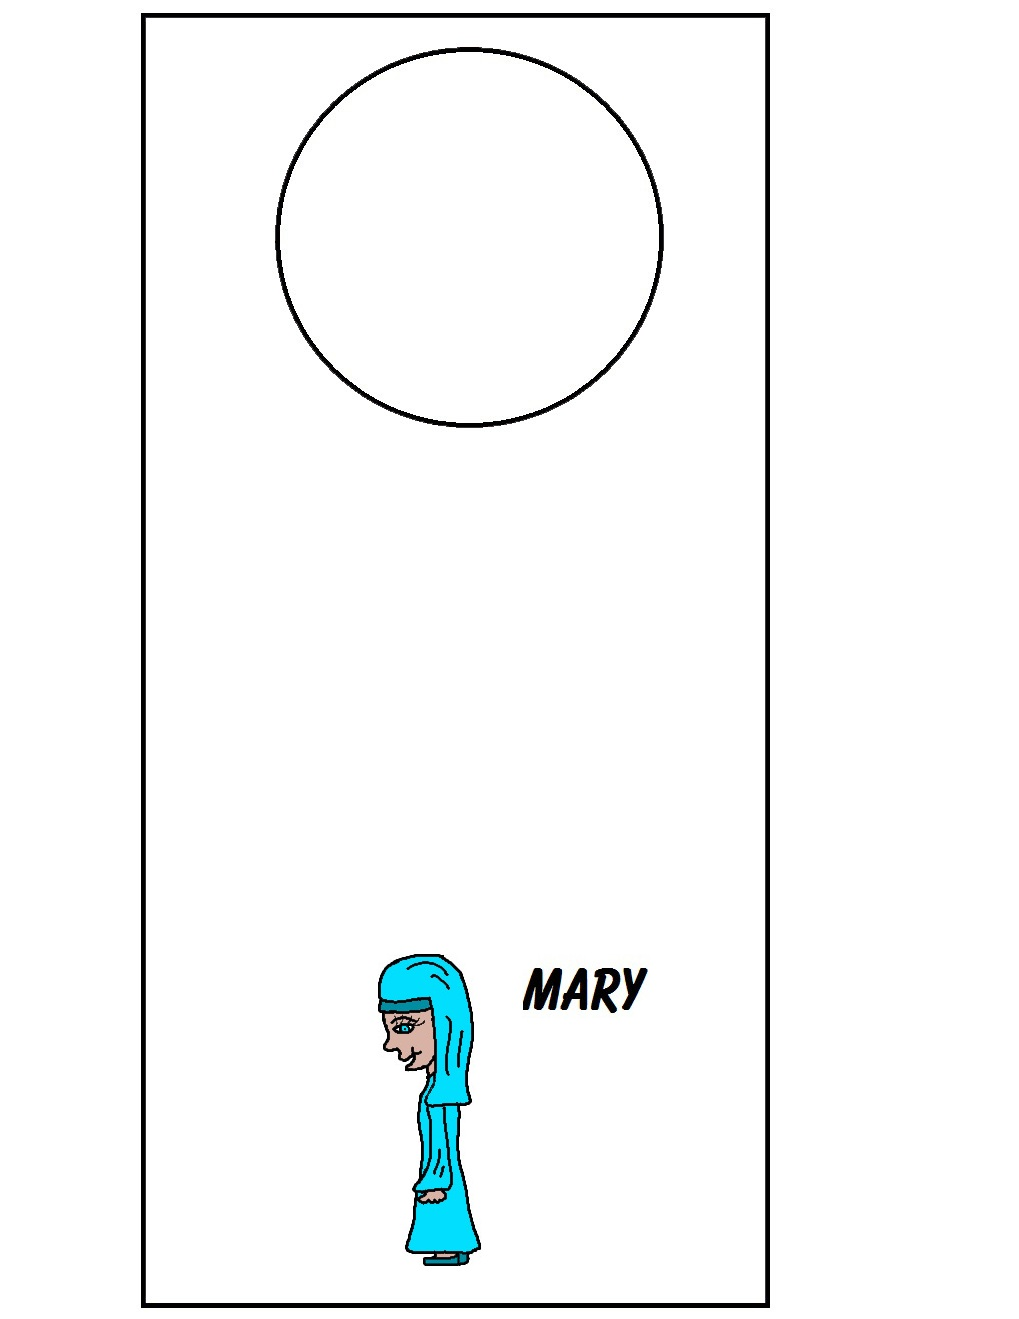 Mary Doorknob Hanger